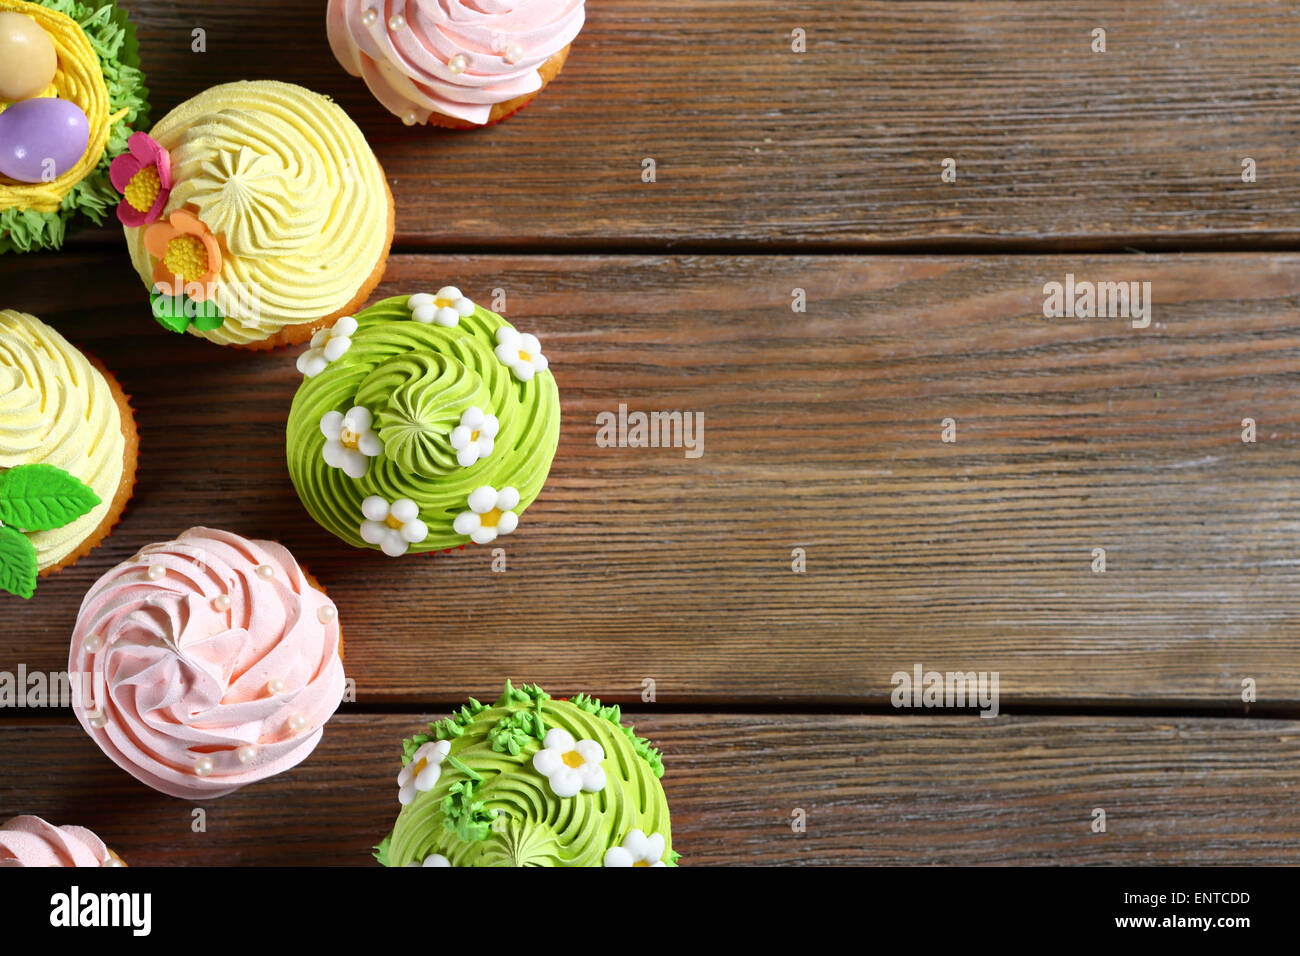 Spring Easter pastry, food closeup - Stock Image